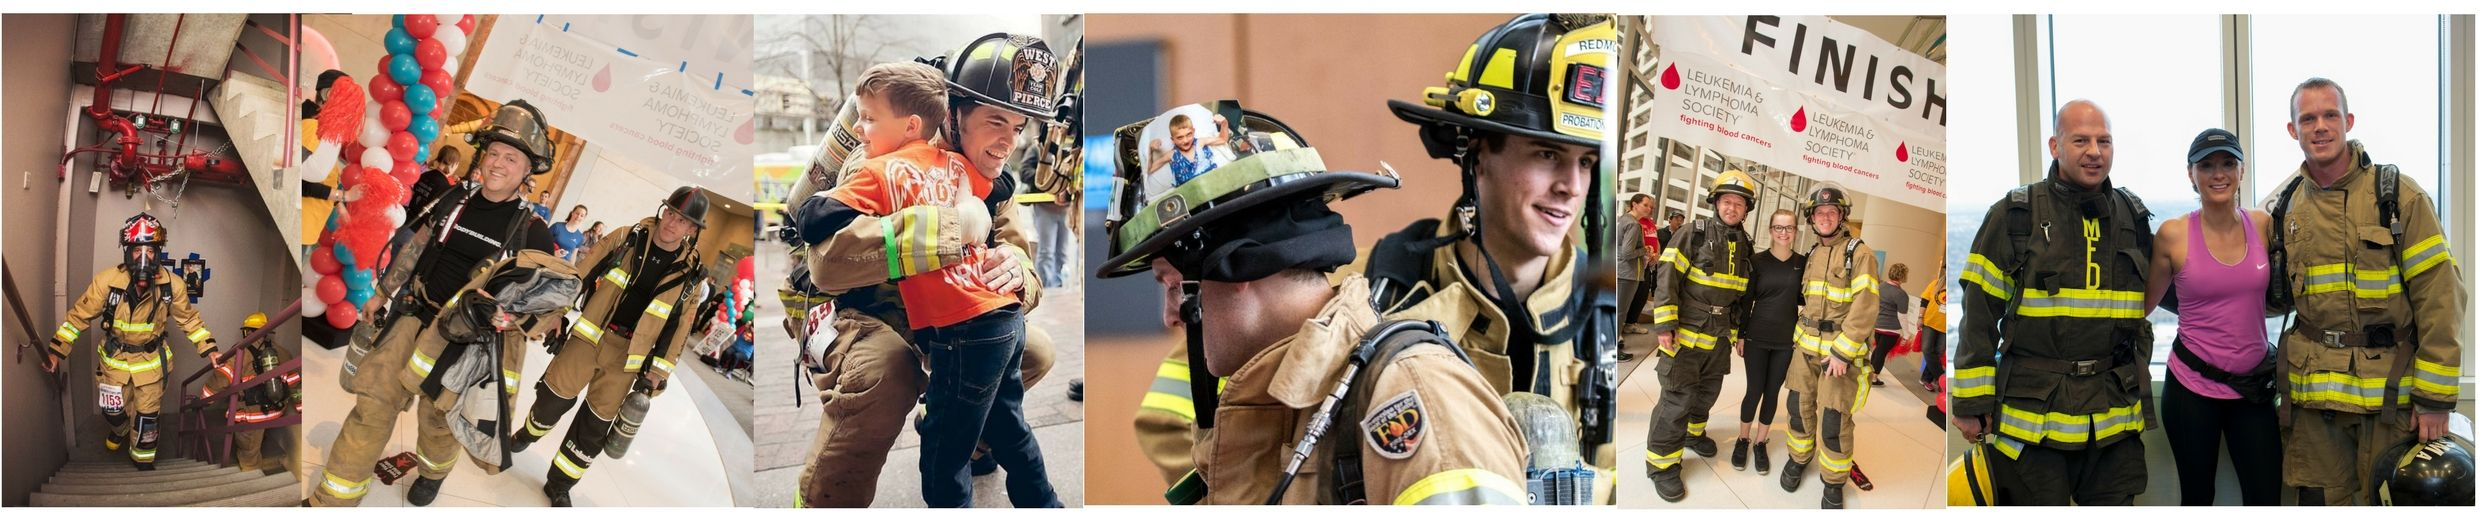 Firefighter pictures